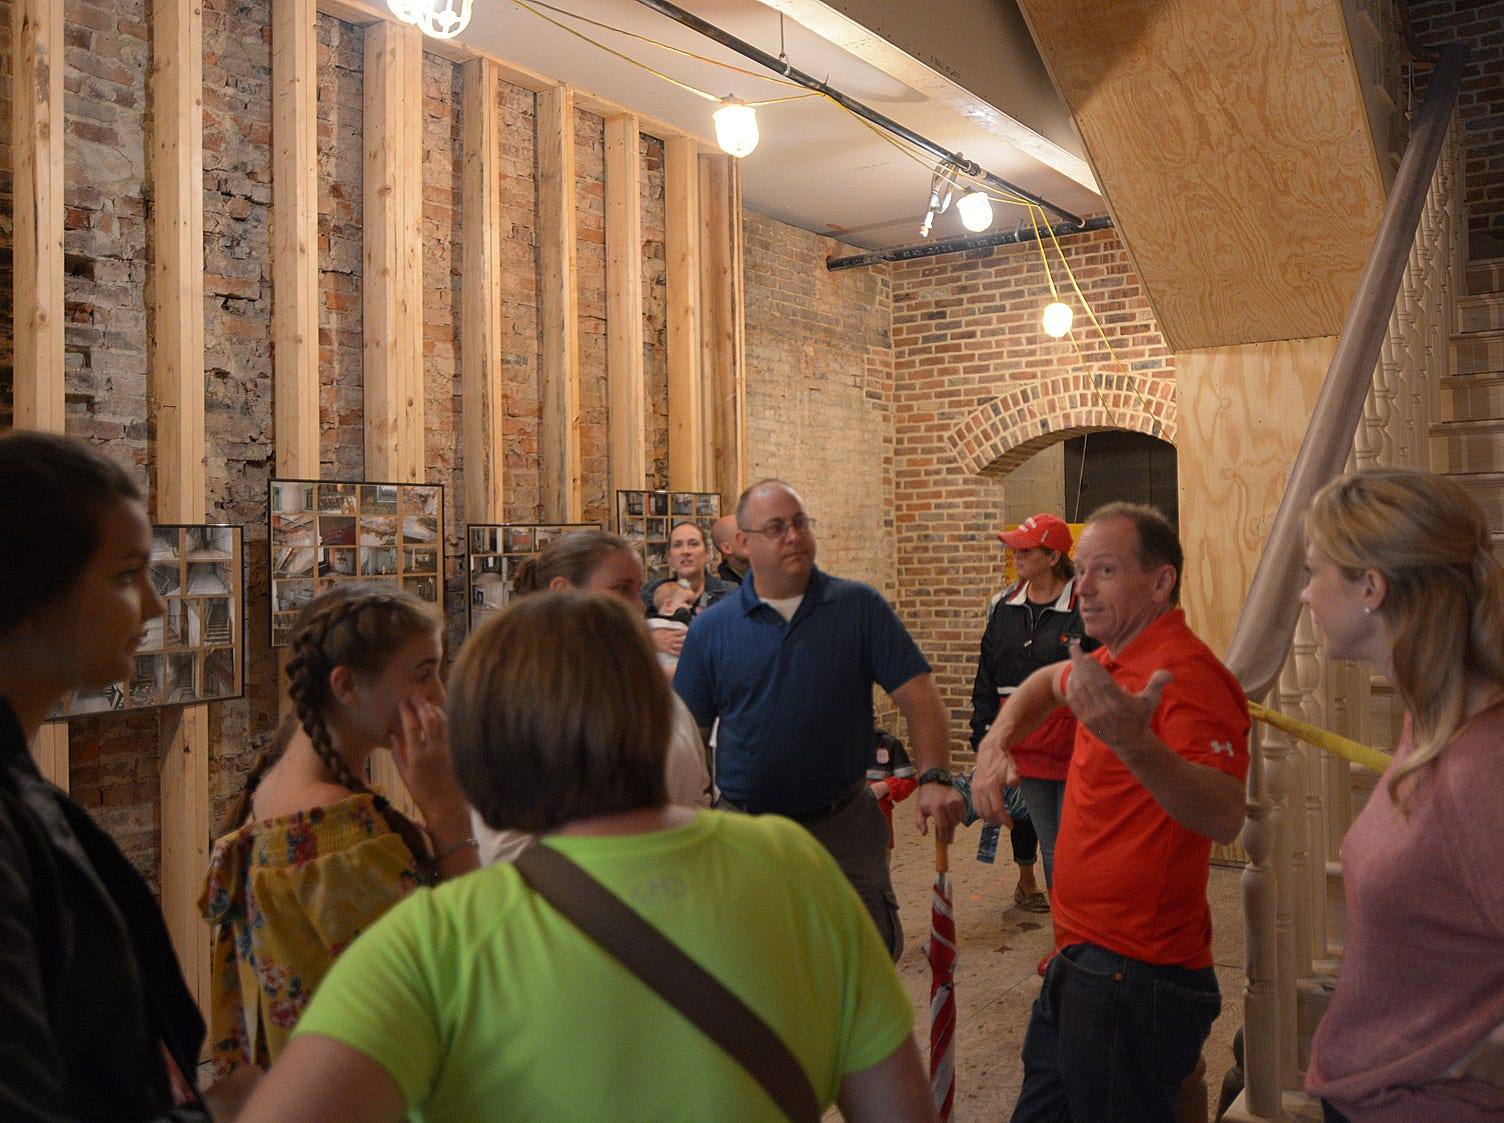 Brad Hutchinson talks about the process and progress of renovating the Mithoff building Friday evening, July 20, 2018, during the Lancaster Festival ArtWalk. Hutchinson owns the historical Lancaster structure.